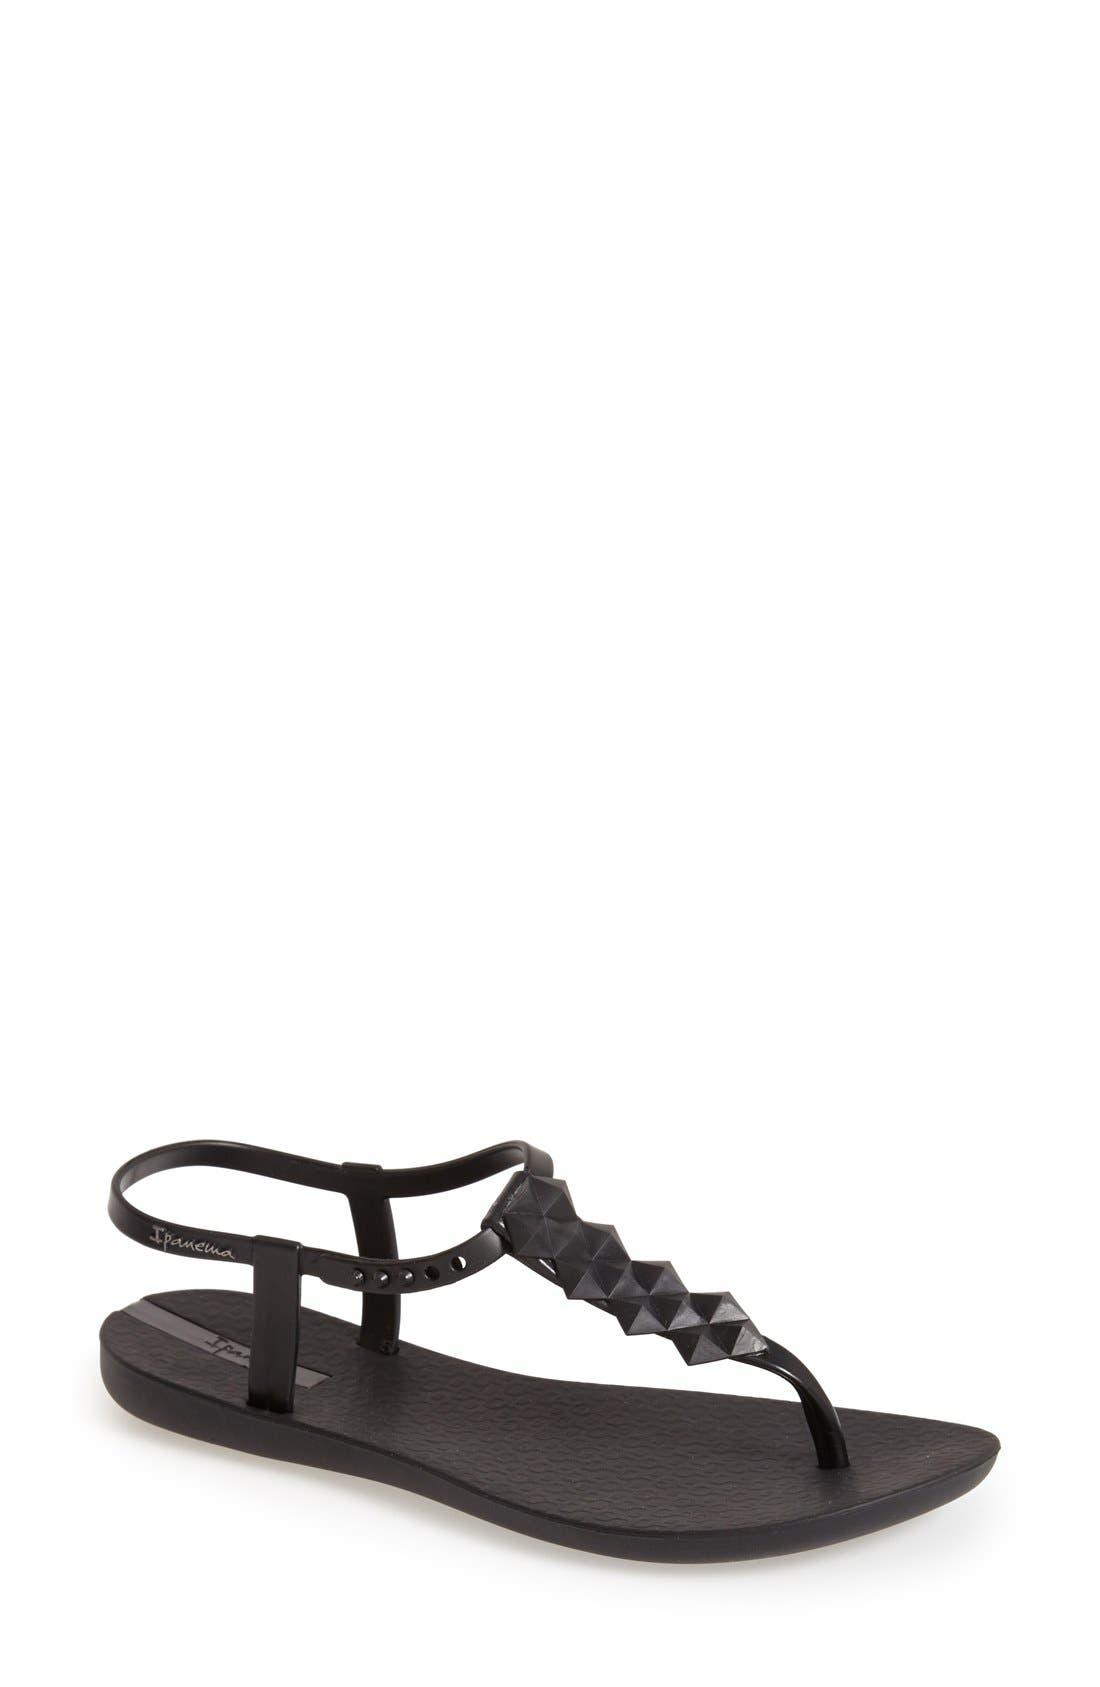 'Cleo' Pyramid Stud Ankle Strap Flip Flop,                         Main,                         color, 001